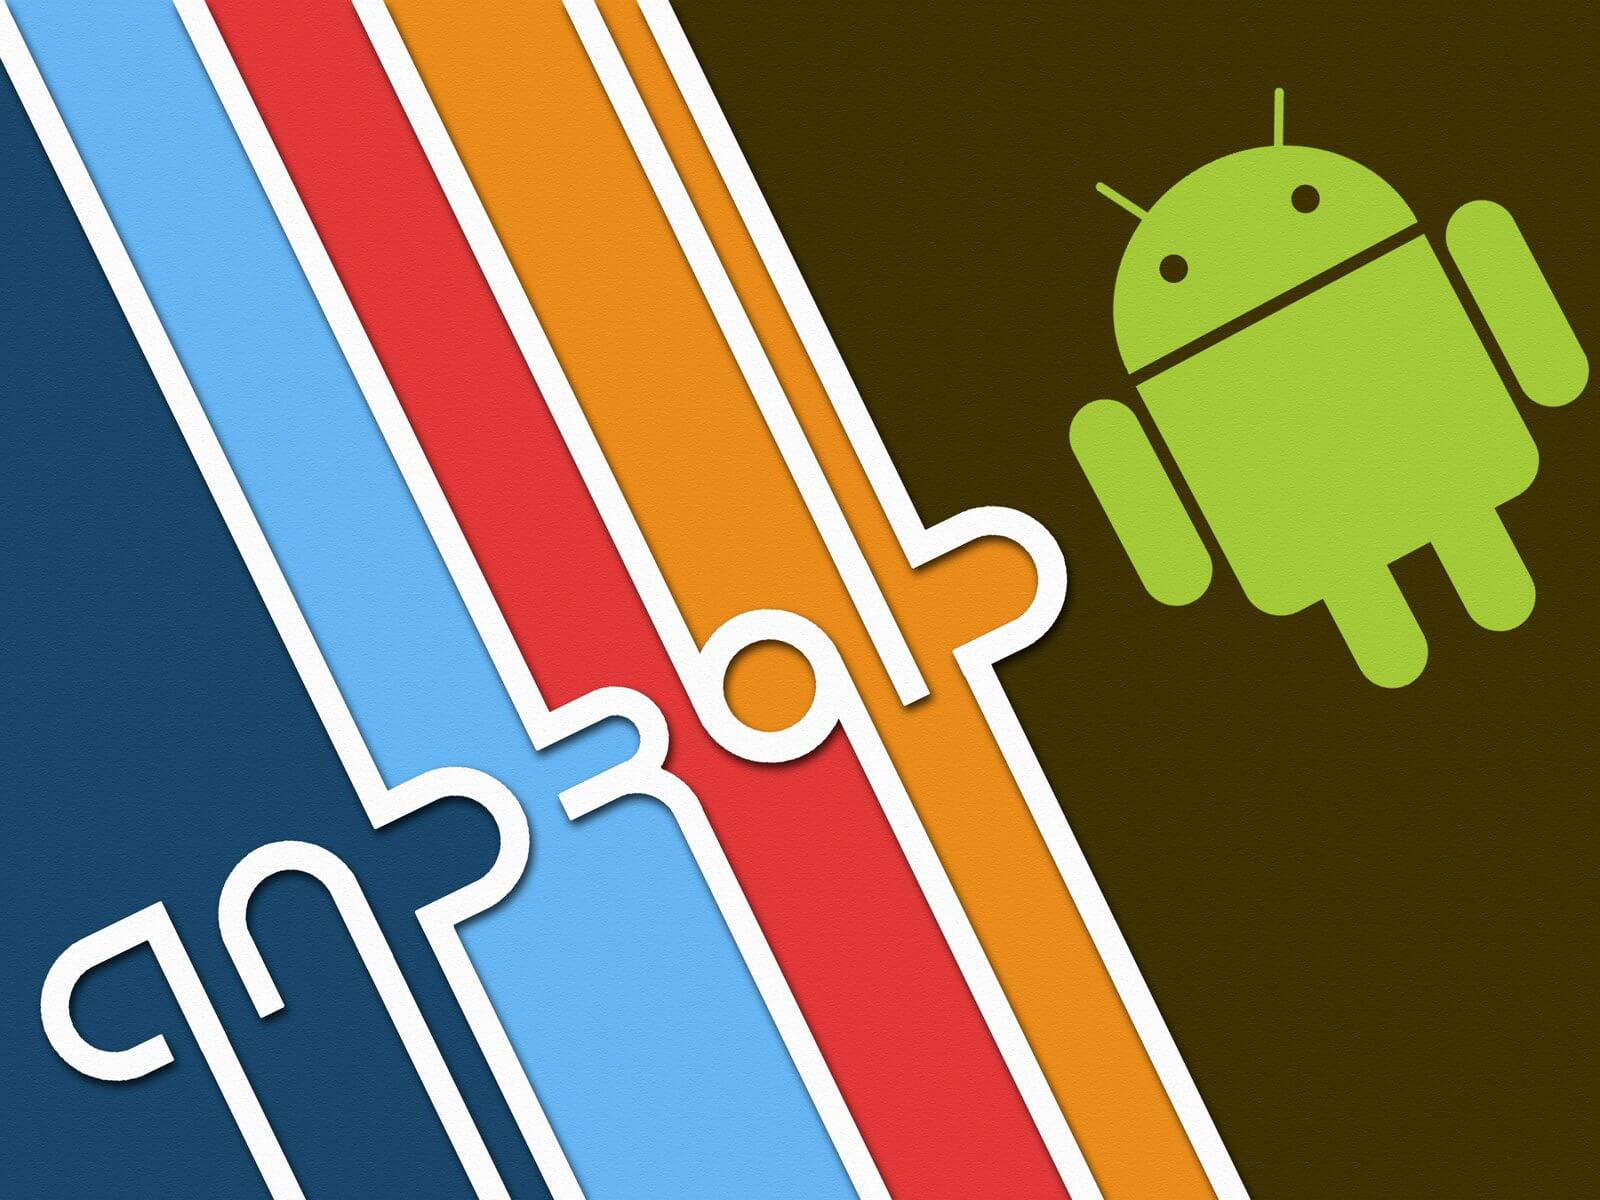 Android Operating System HD Wallpaper Bauhaus Influenced Design